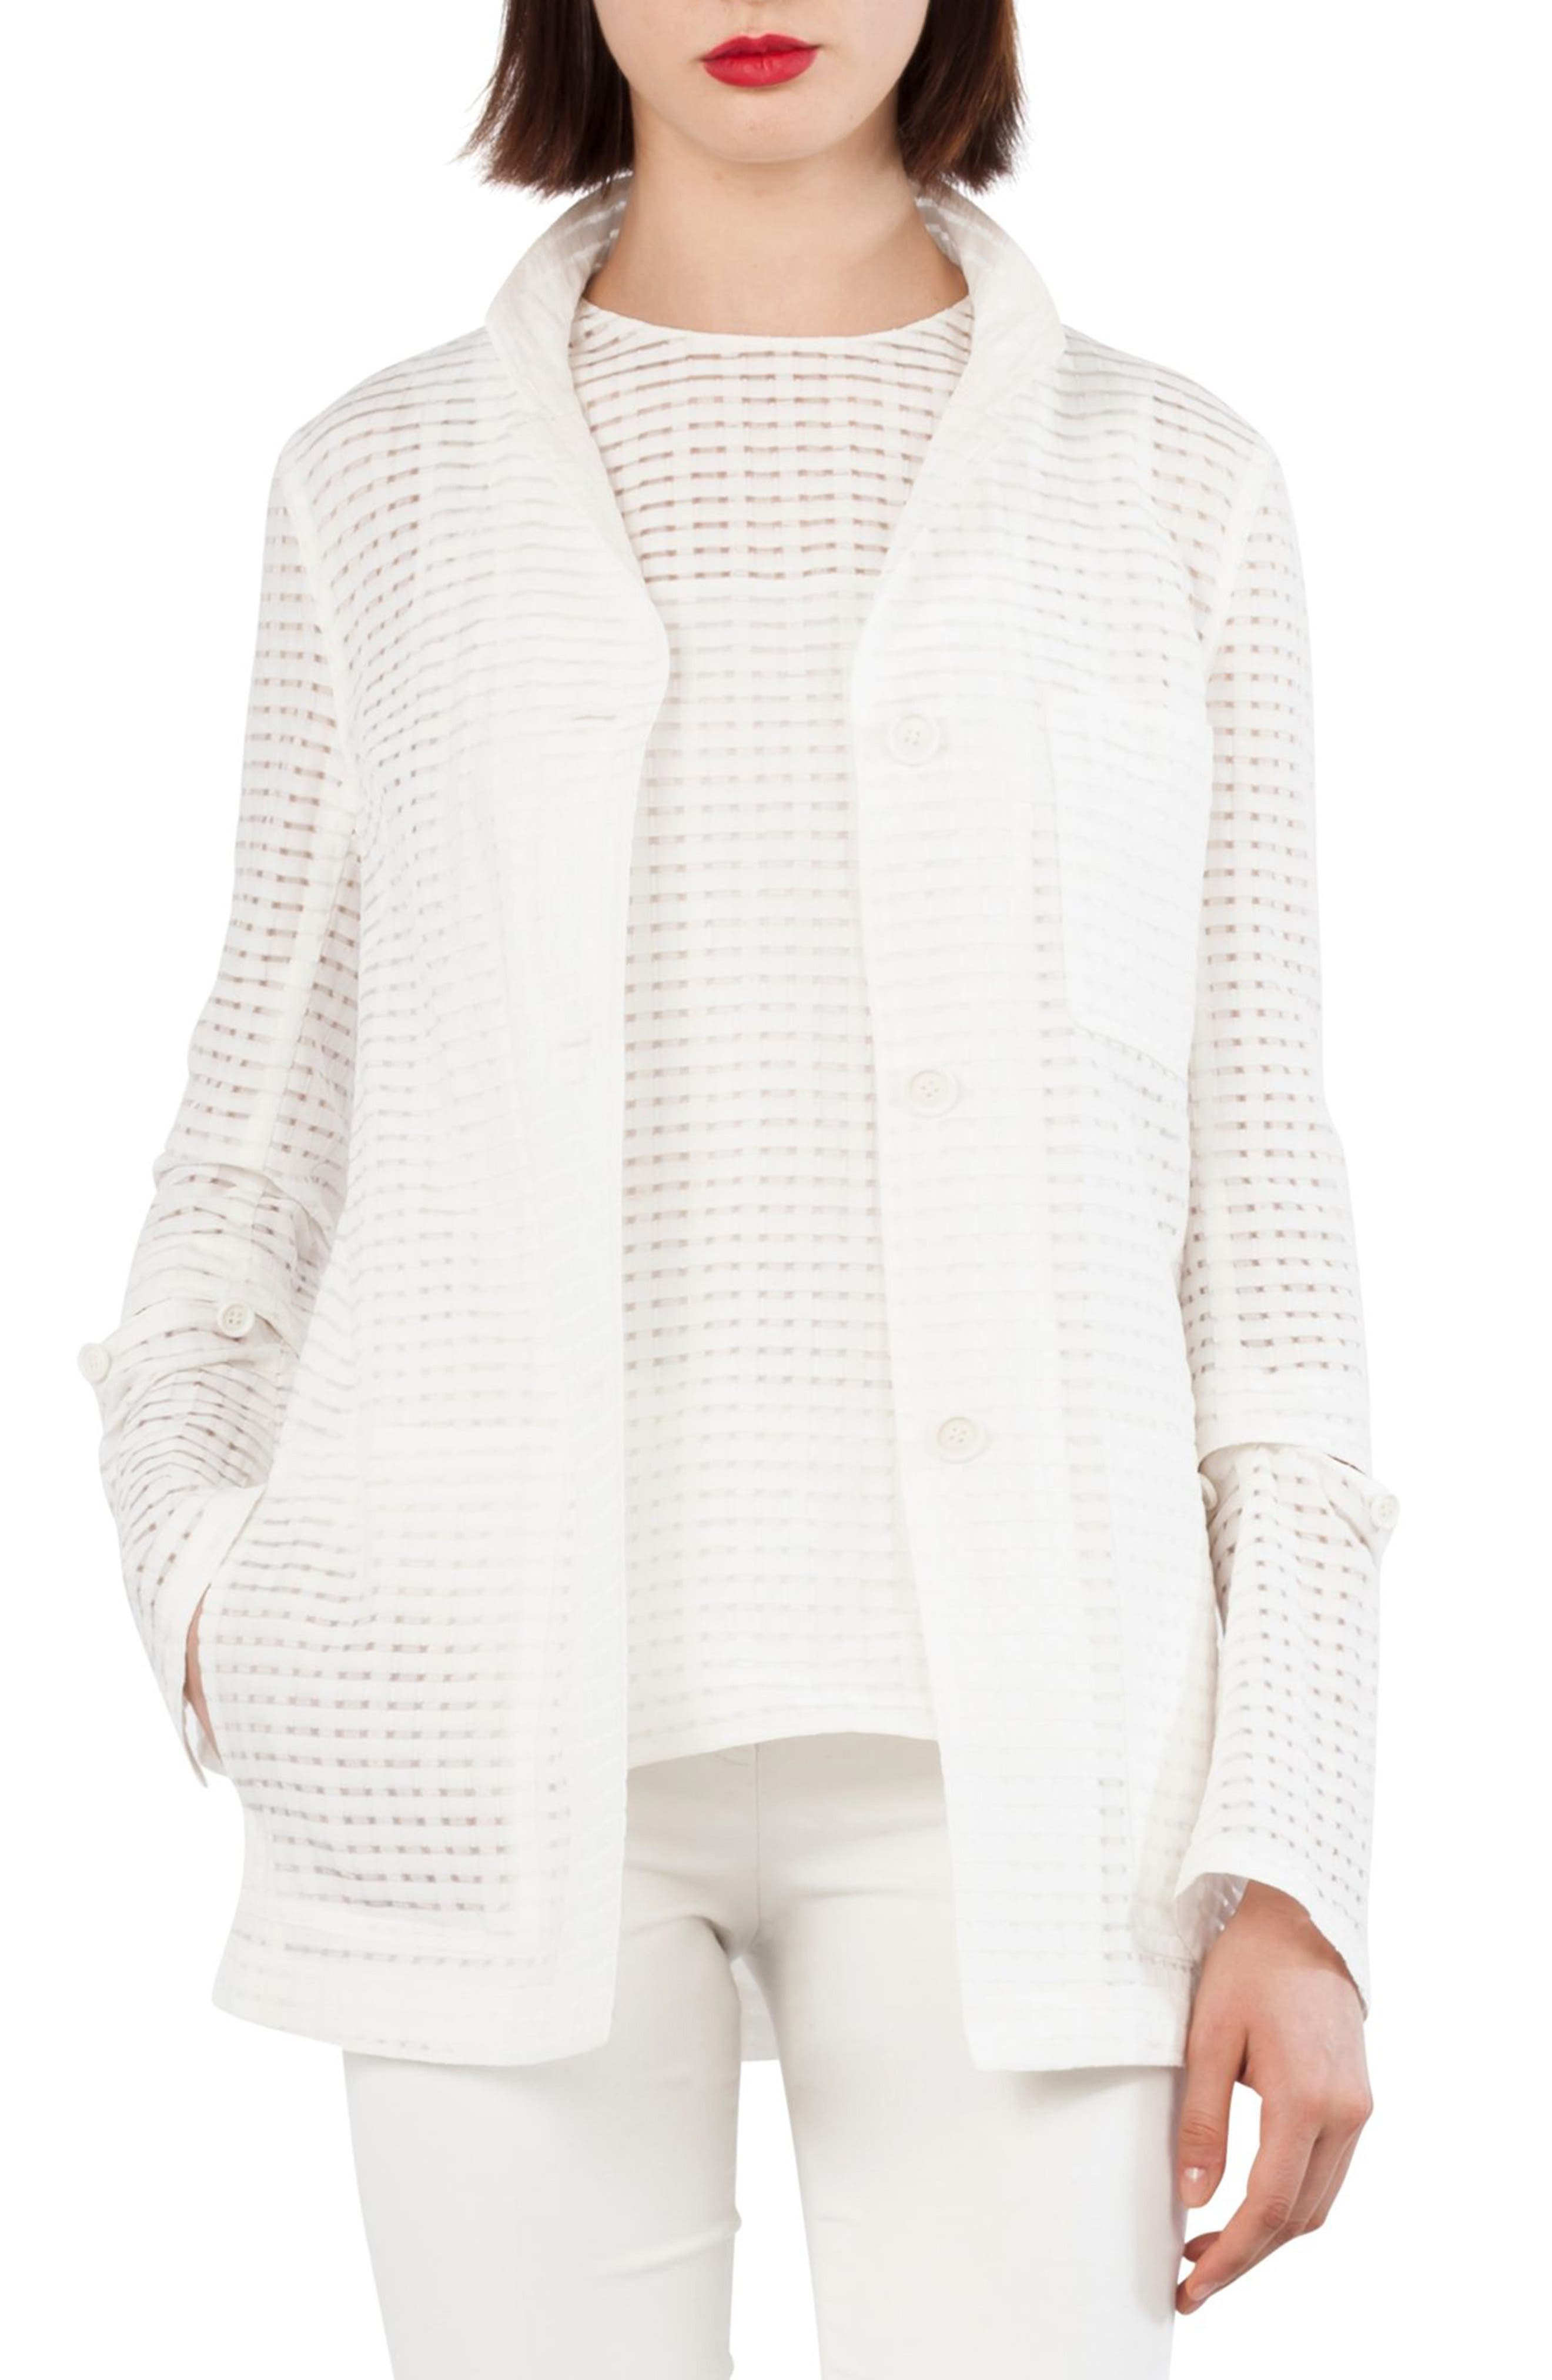 Openweave Silk & Cotton Blend Jacket with Detachable Cuffs,                         Main,                         color, Paper